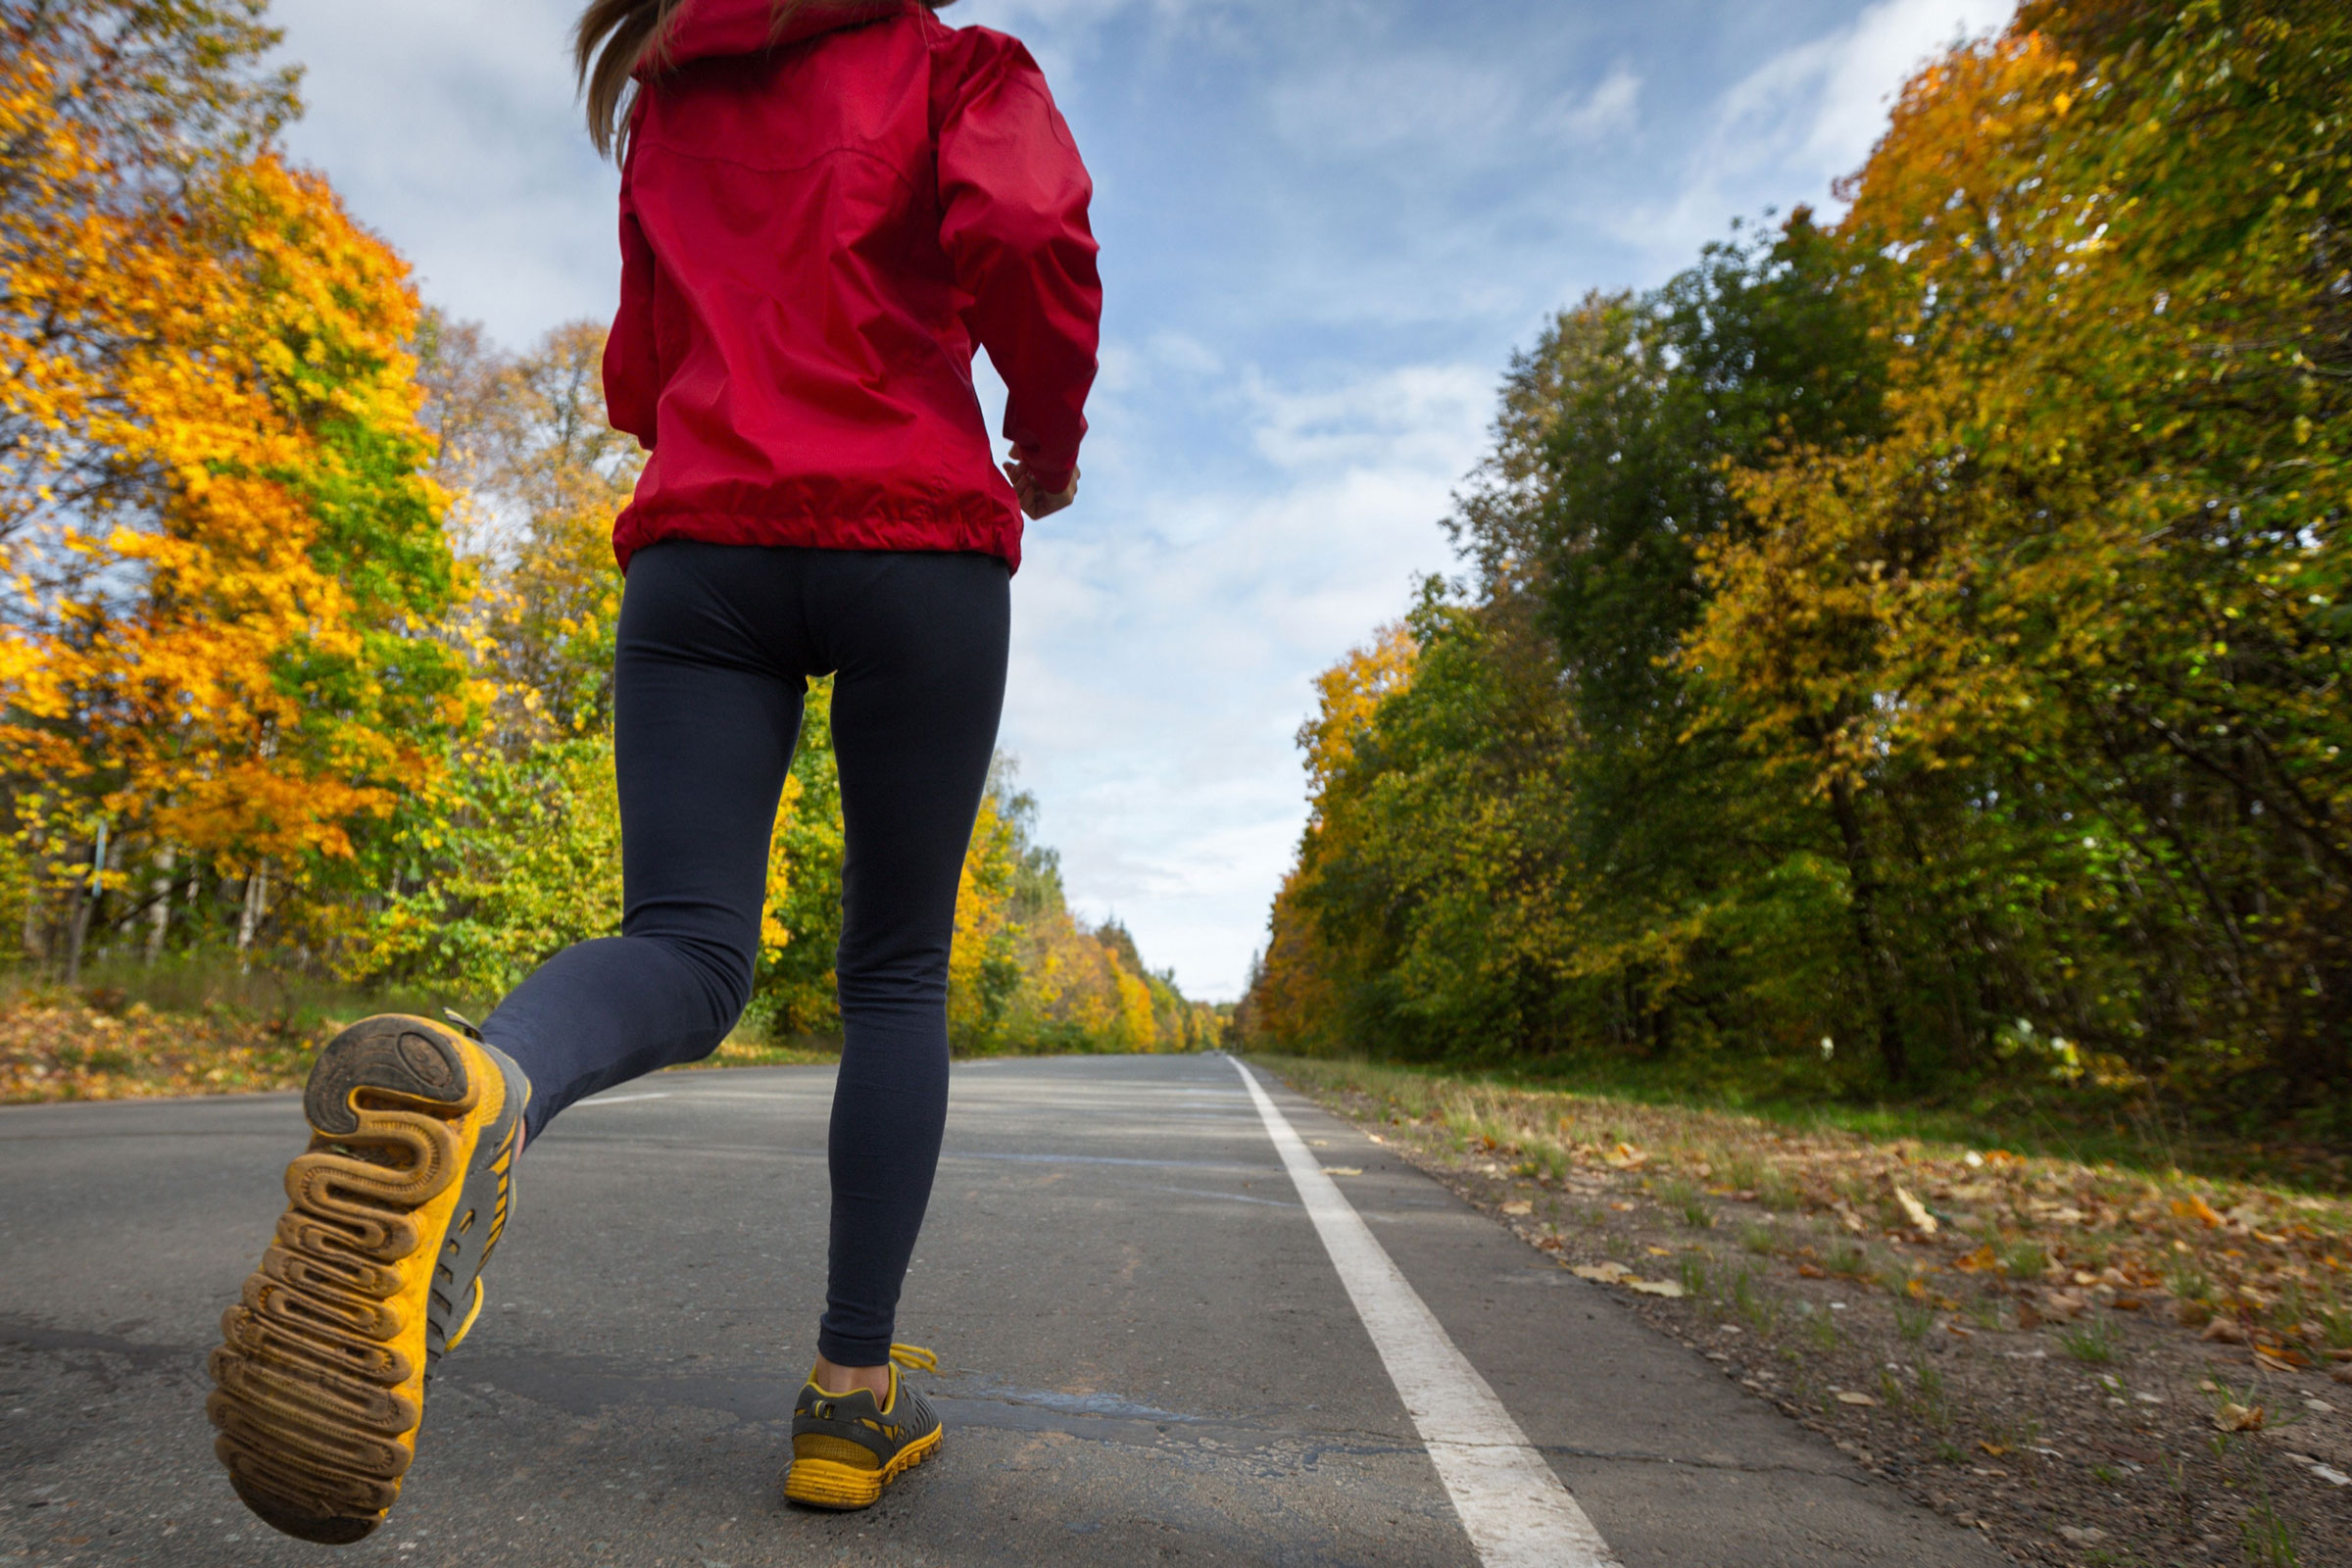 Run Faster: Prime Your Nervous System With Power Hill Sprints